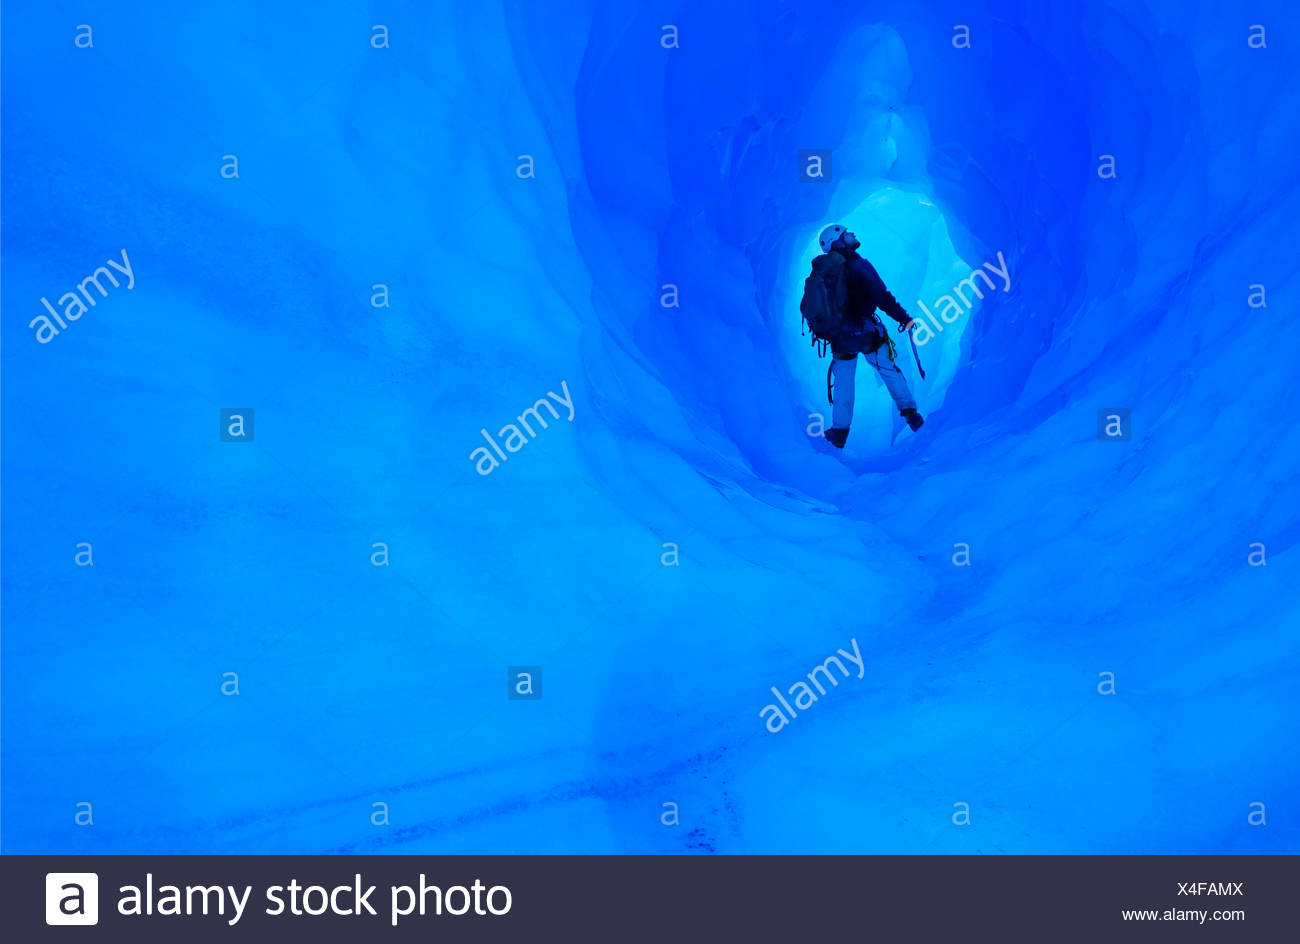 Ice climbing in an ice cave or glacier cave, Grey Glacier, Torres del Paine National Park, Chile - Stock Image